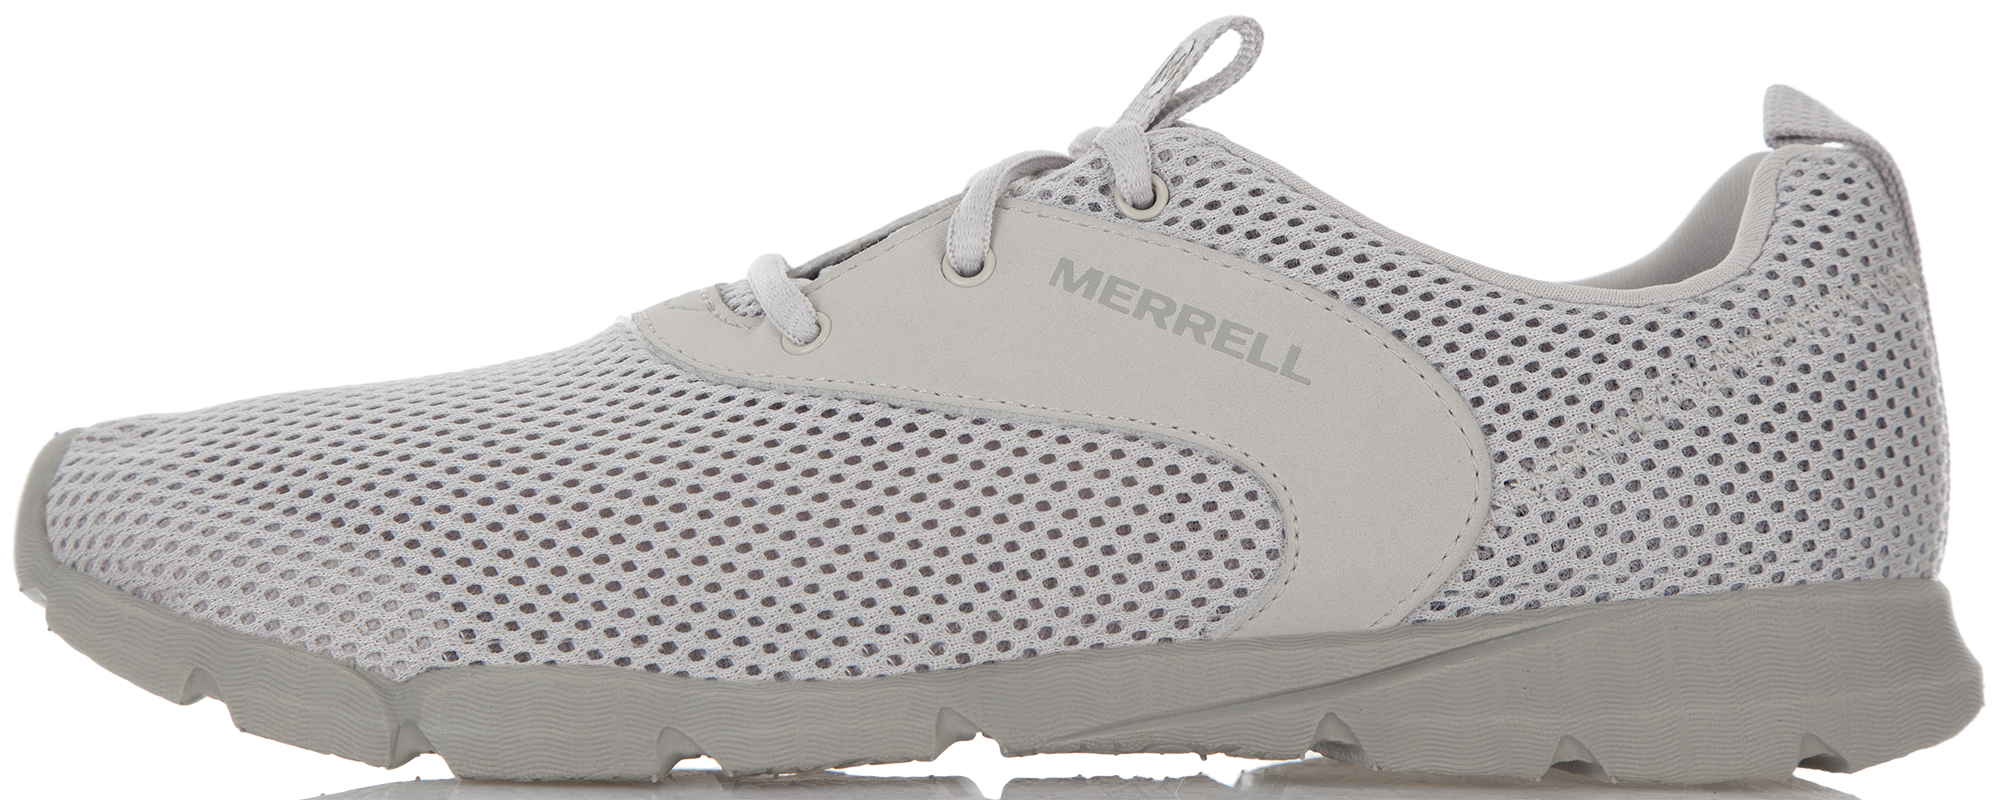 Merrell Полуботинки женские Merrell Flora Lace Breeze ui 660v ith 40a rotary cam on off changeover switch new